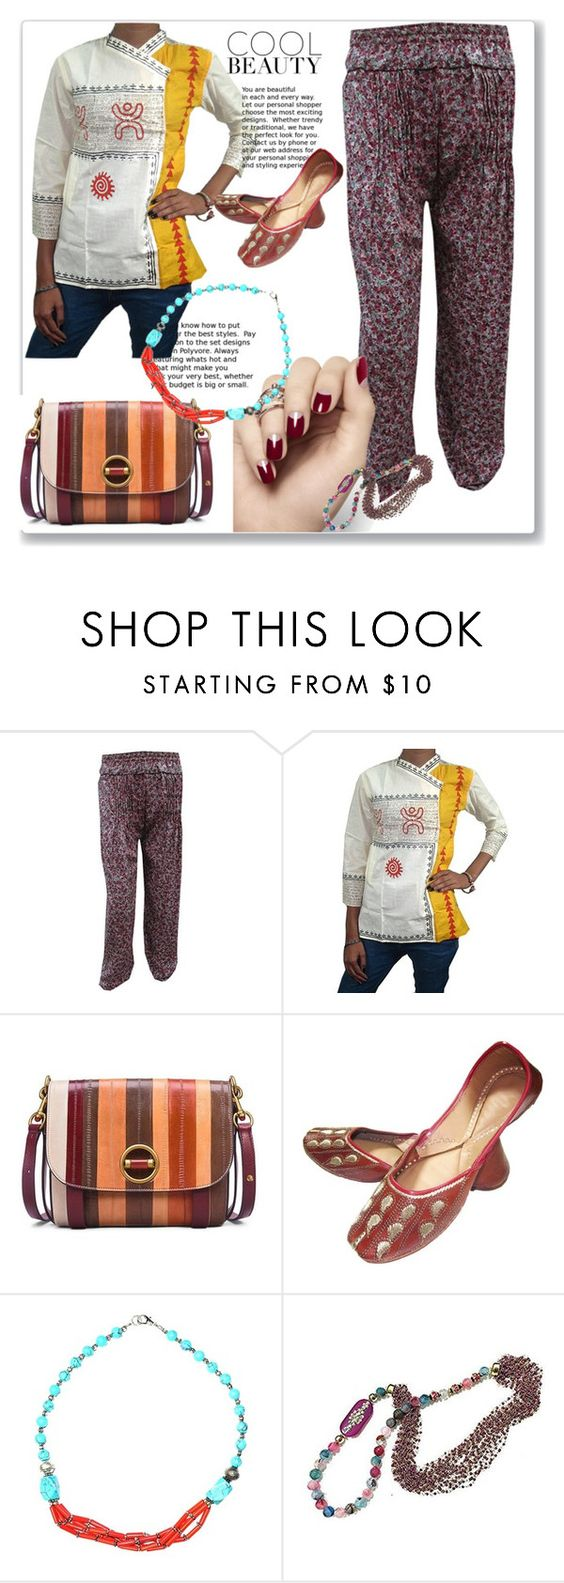 Cool Beauty Style by era-chandok on Polyvore featuring Tory Burch